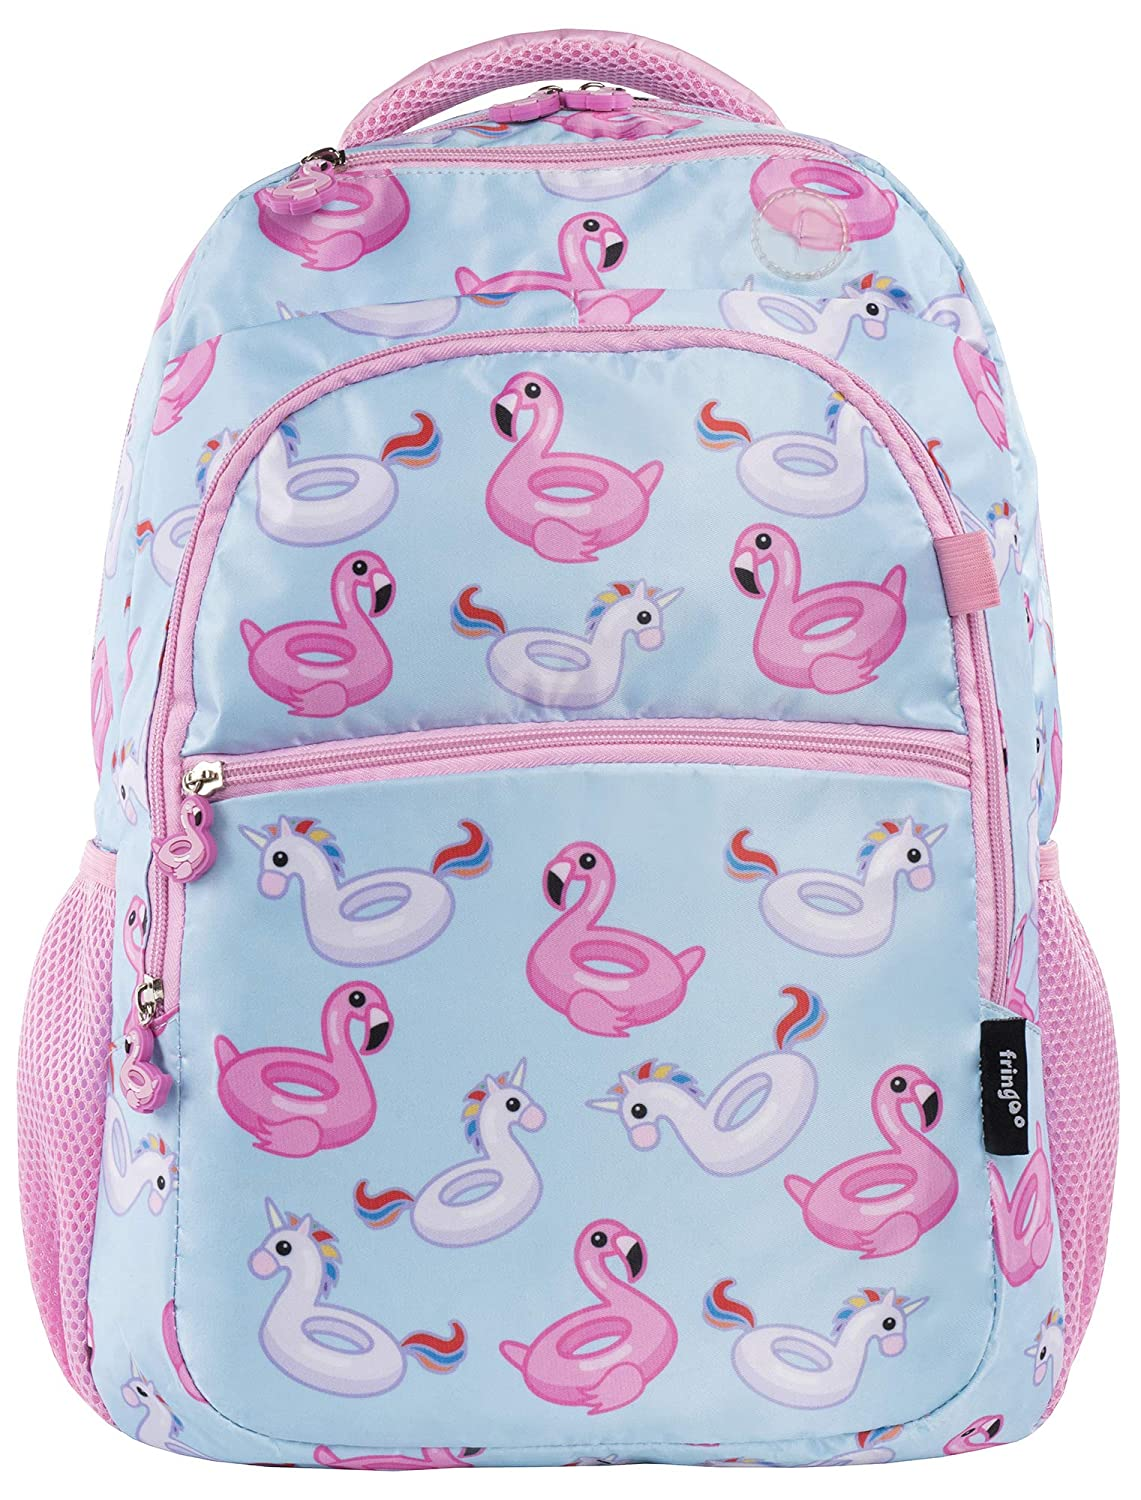 FRINGOO Boys Girls School Backpack Multi-Compartment Waterproof Junior Travel Luggage Rucksack Unicorn Bag (Chubby Unicorn)